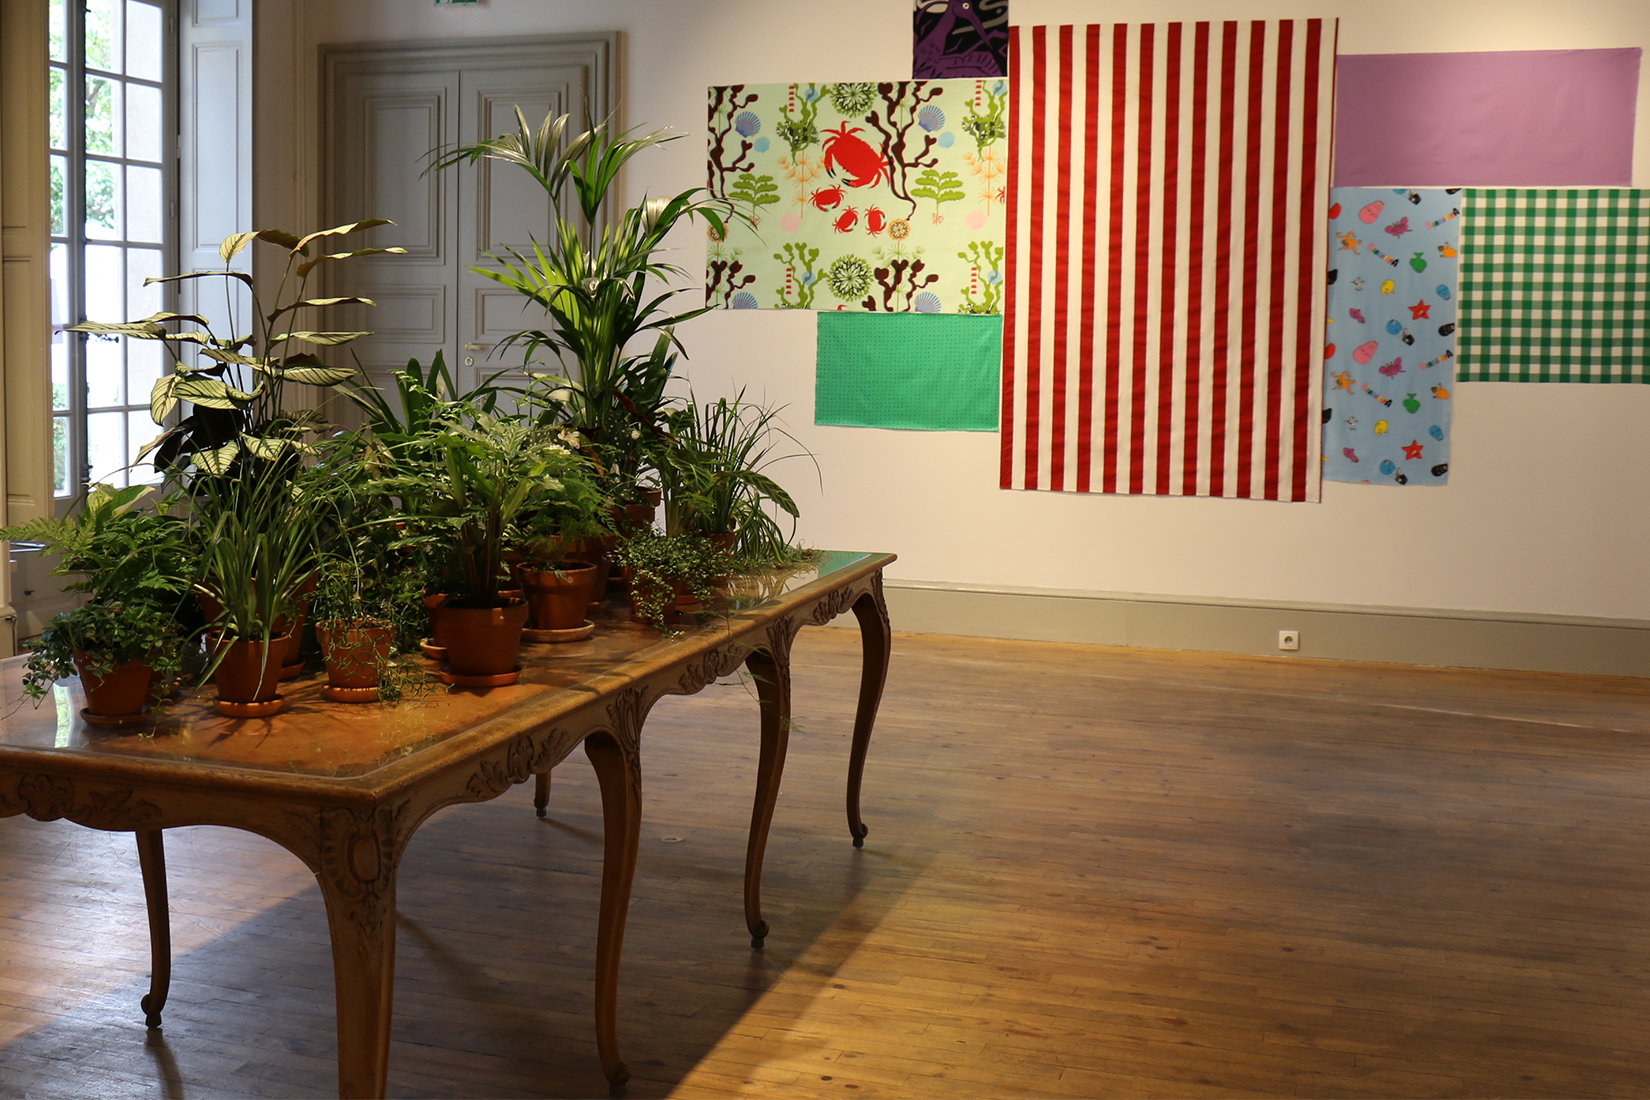 An antique table with an installation of plants on it, in front of a wall covered with different fabrics.